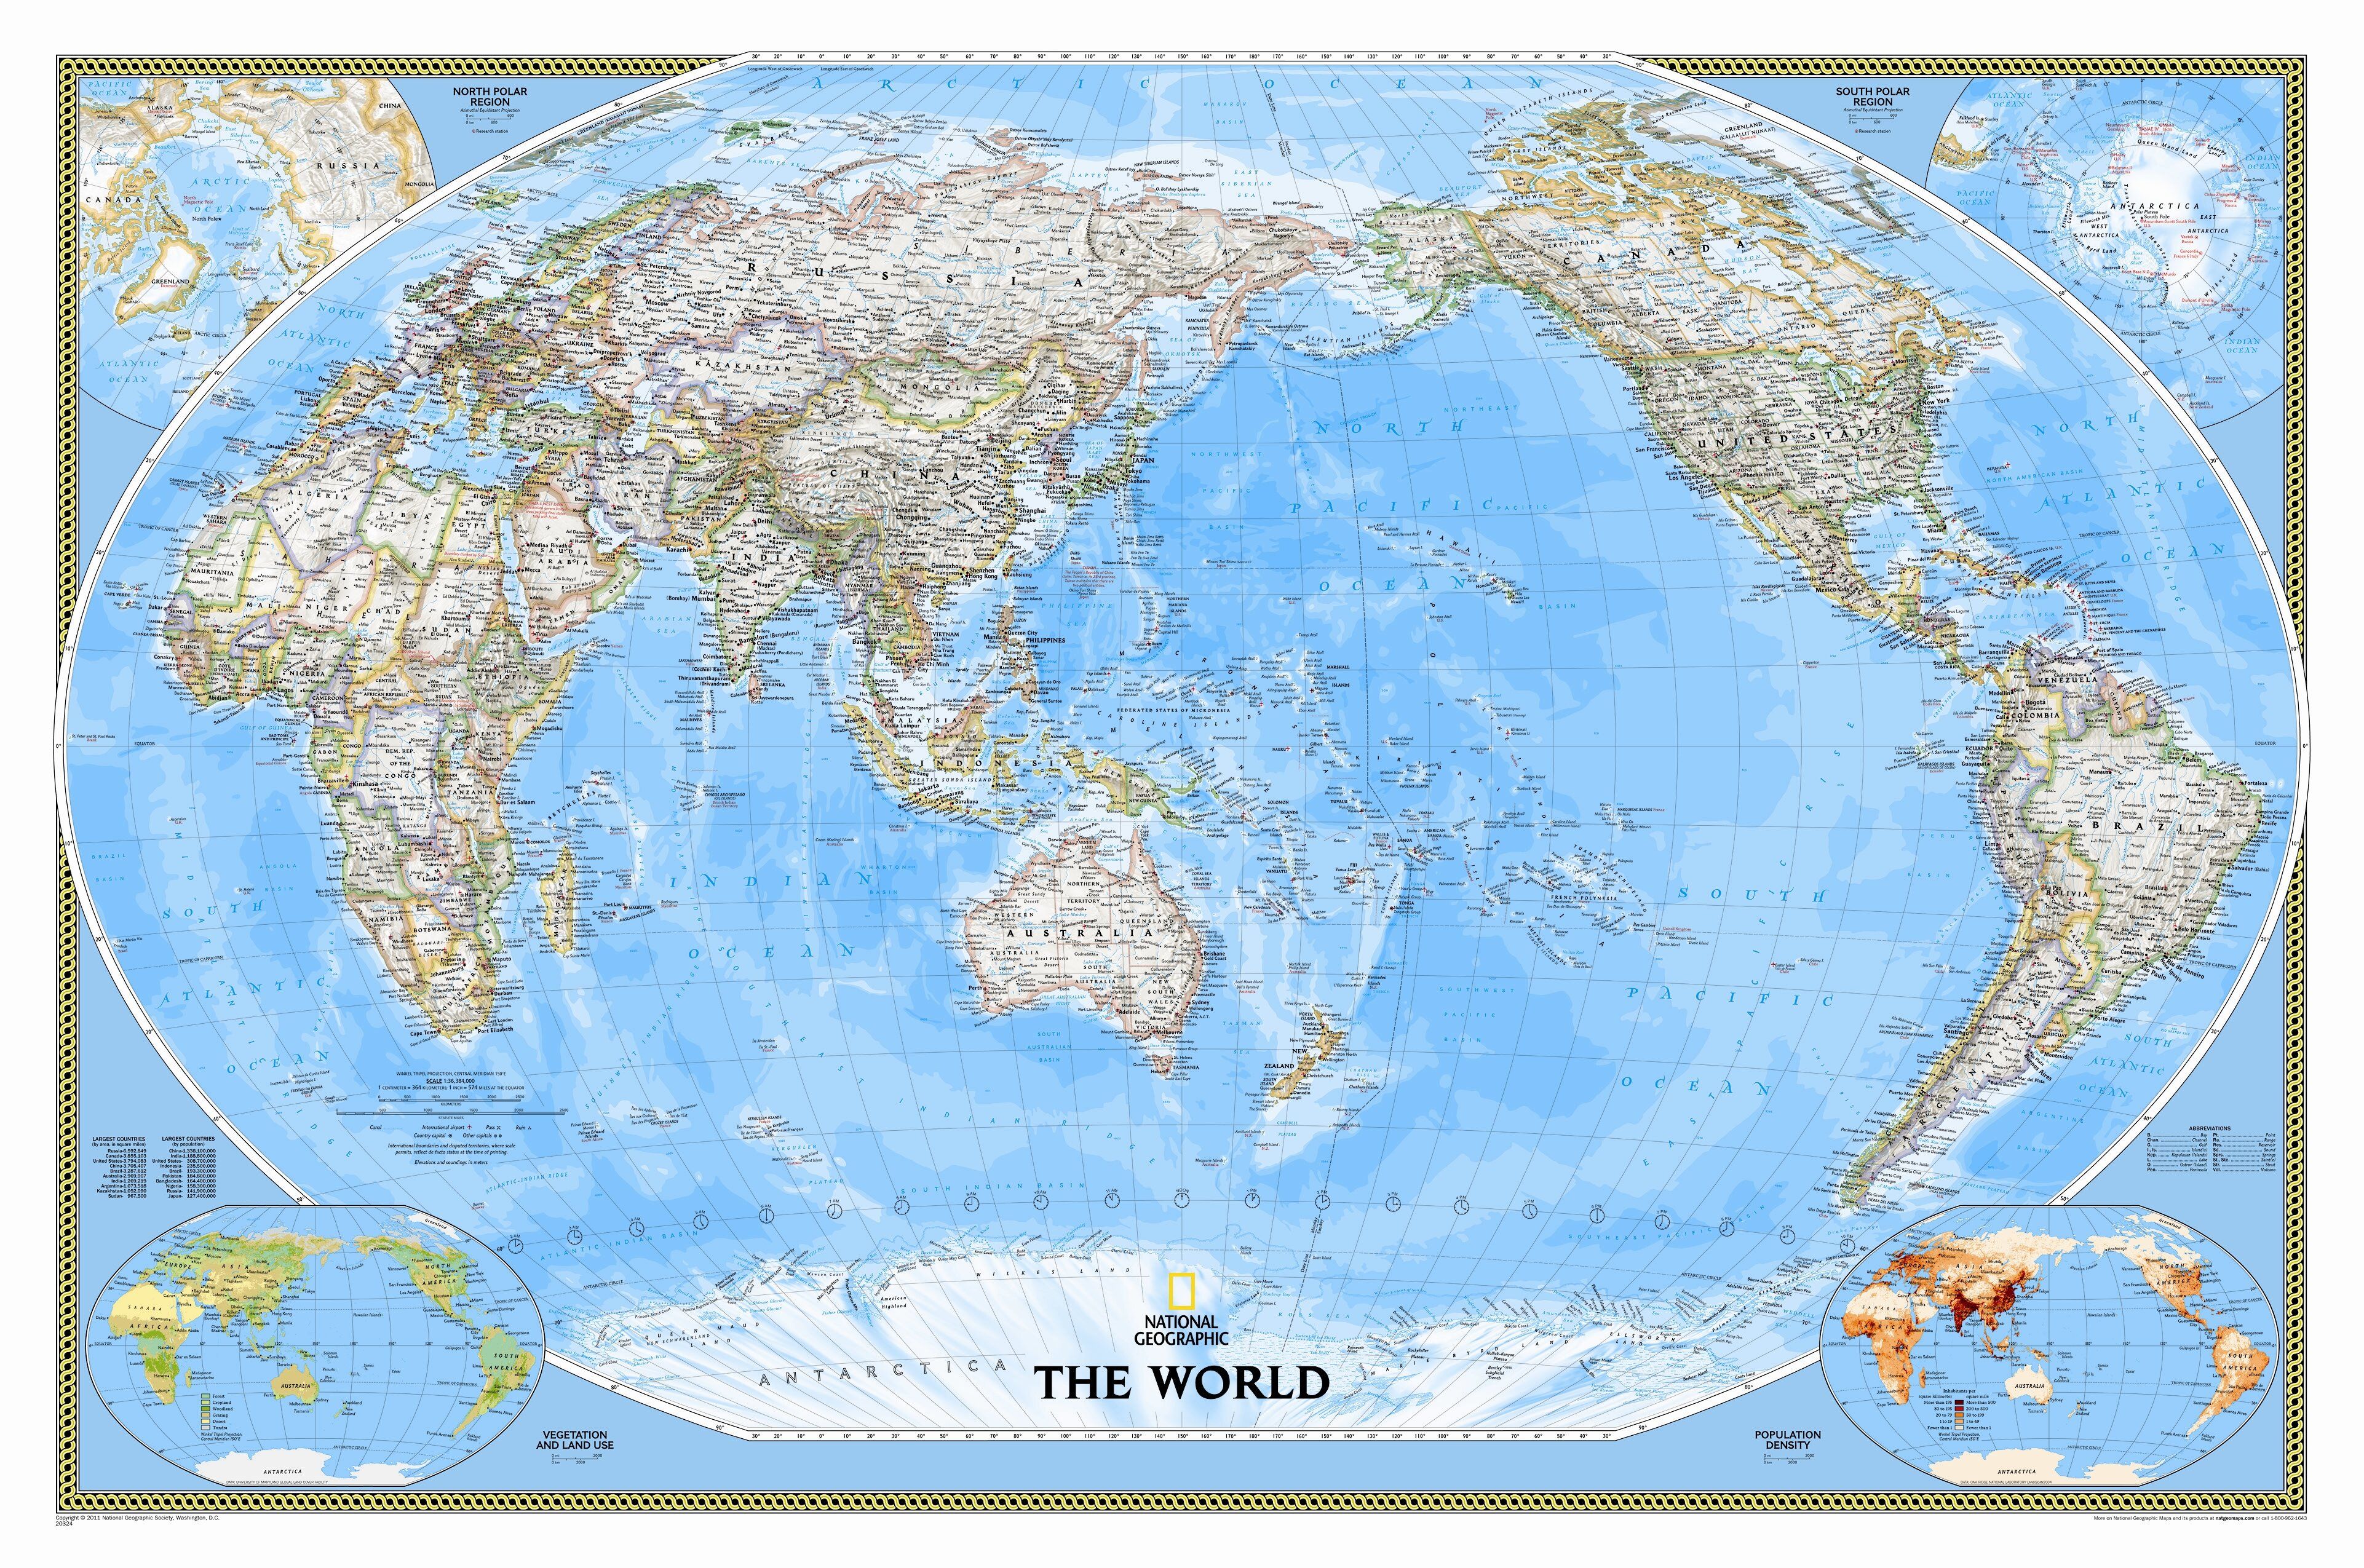 National geographic maps world classic pacific centered wall map national geographic maps world classic pacific centered wall map wayfair gumiabroncs Image collections